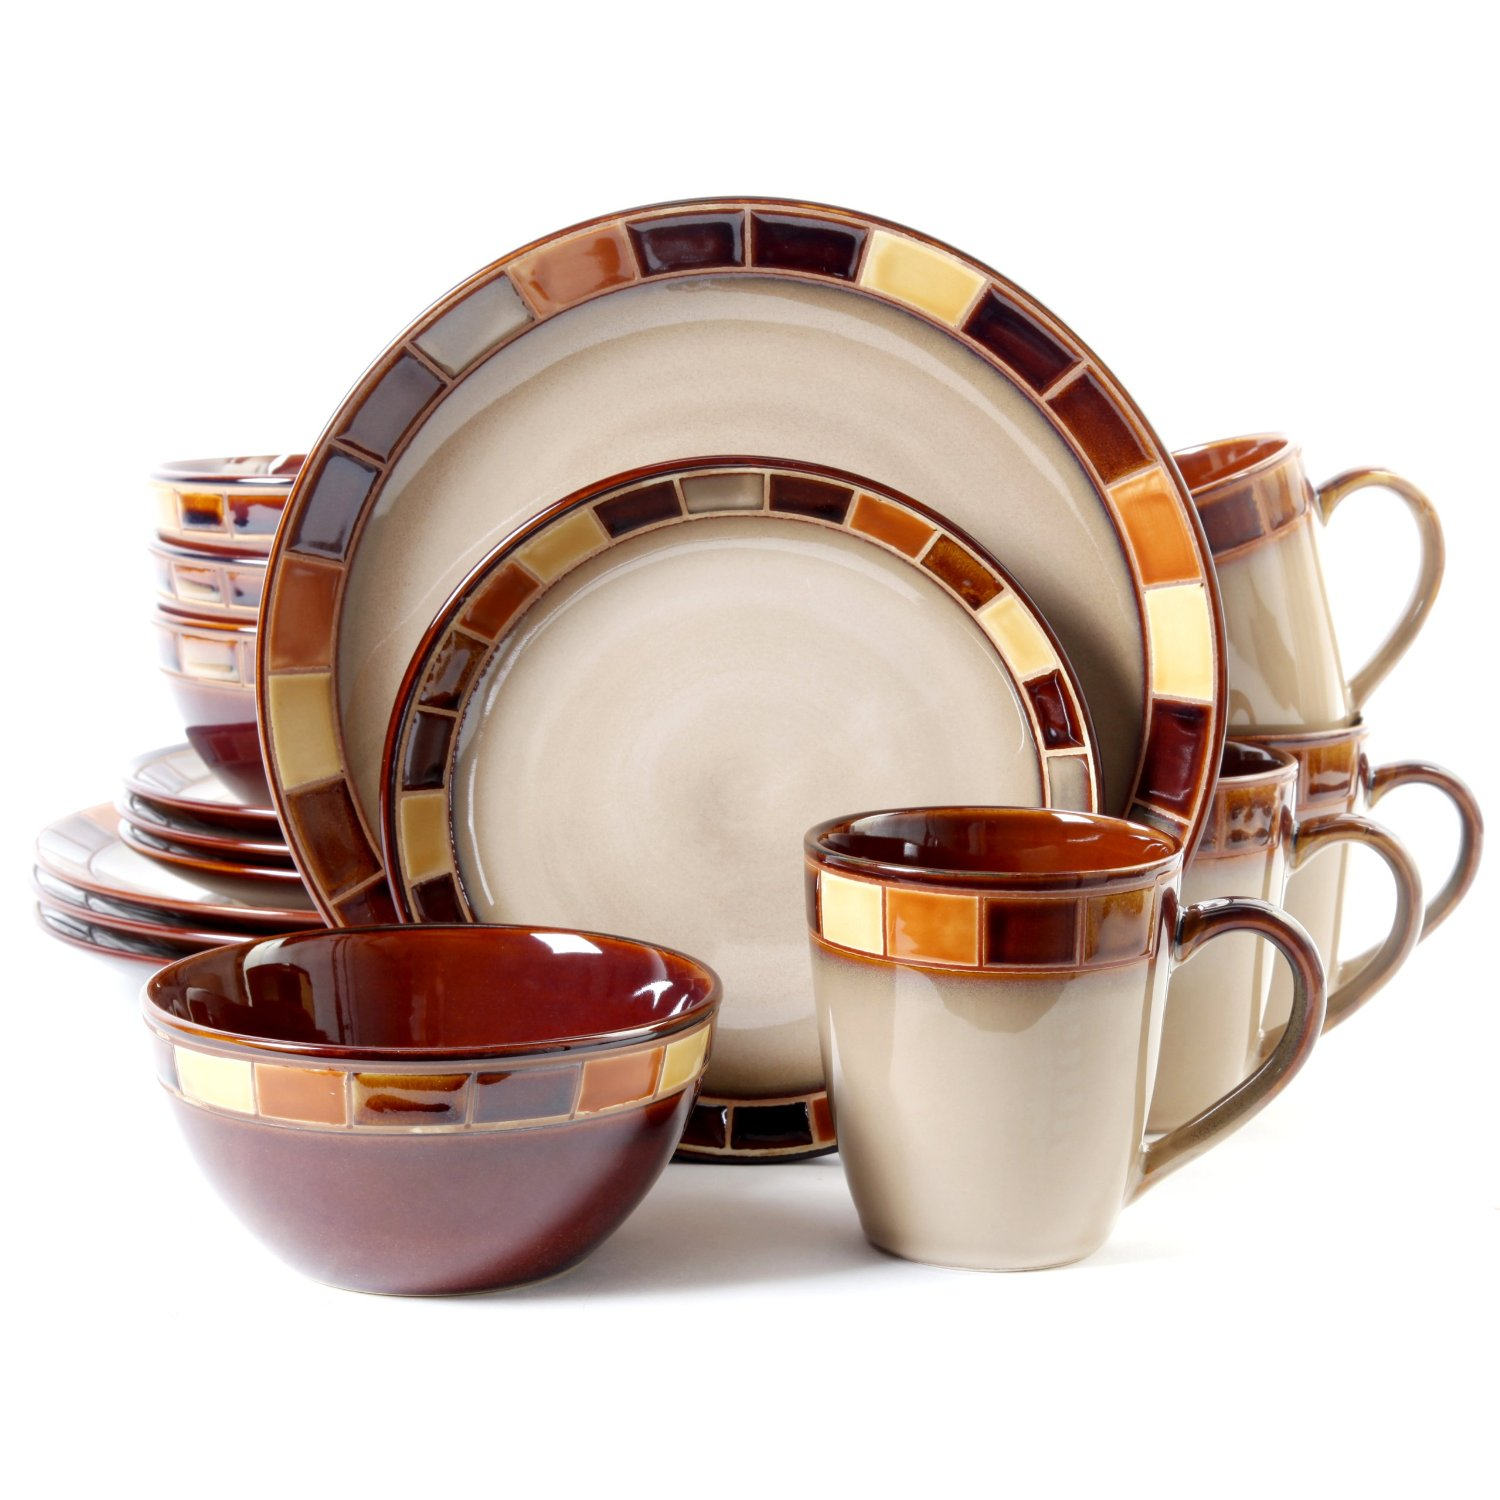 Top 10 Best Dinnerware Sets Reviews in 2020